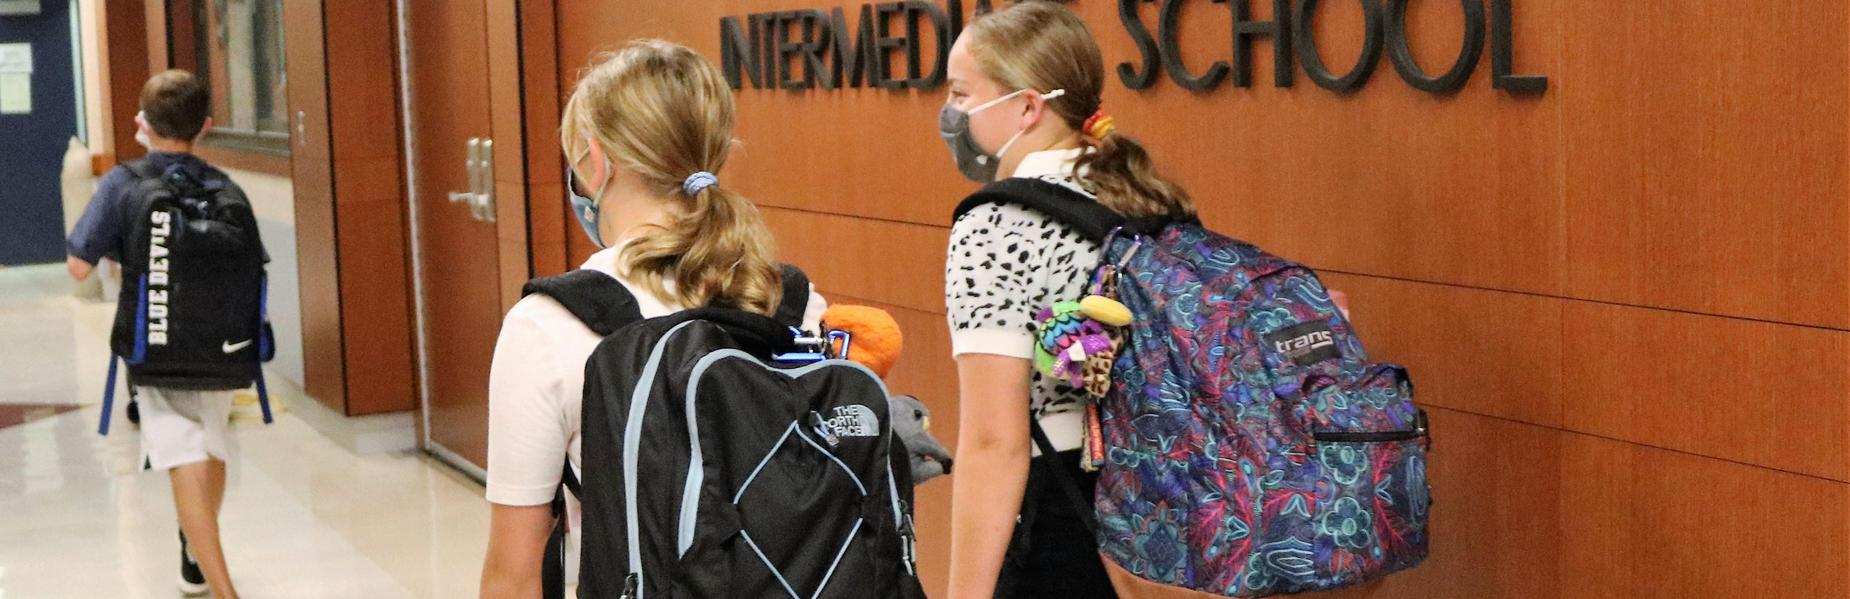 Photo of students walking in hallway on first day of school.